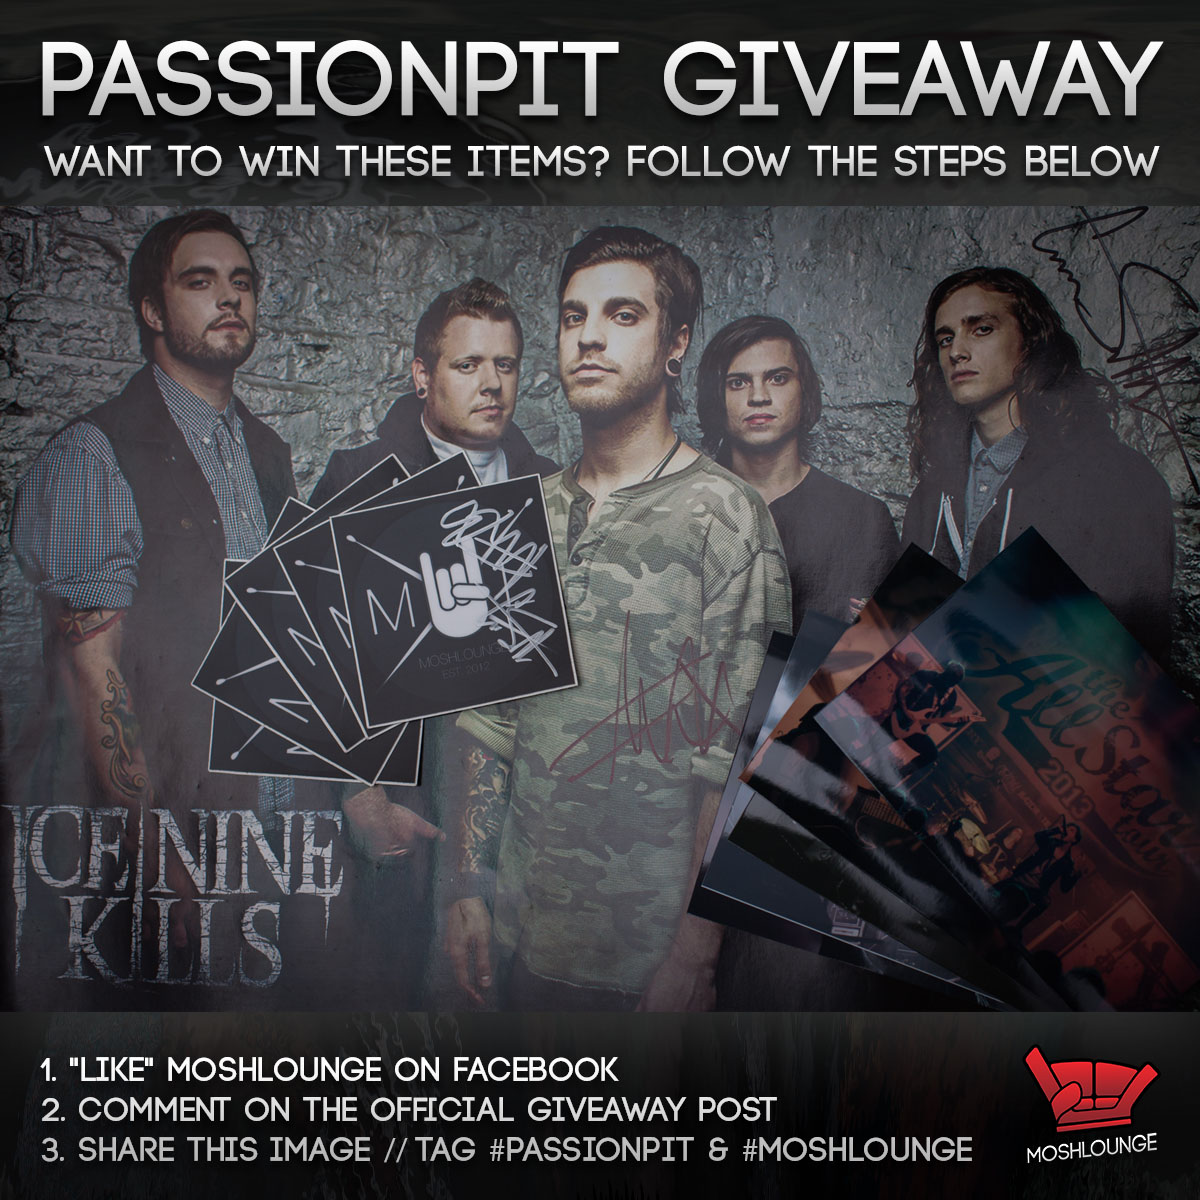 PassionPit Giveaway Facebook